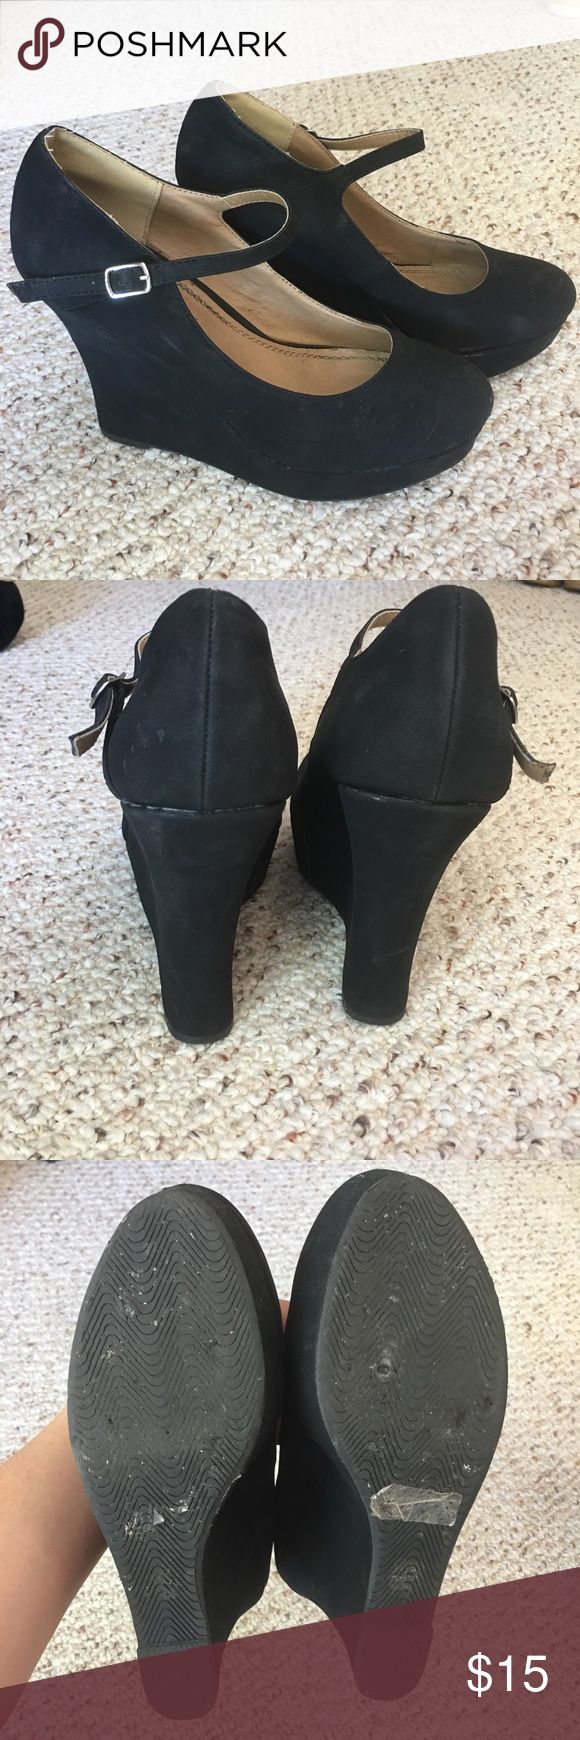 Black Mary Jane Wedges Black Mary Jane Wedges - Size 10  ‼️ OFFERS CONSIDERED‼️  💥💥I offer a 2 piece bundle discount, but can arrange a 3+ piece (and greater %) if you comment. 😊 Shoes Wedges